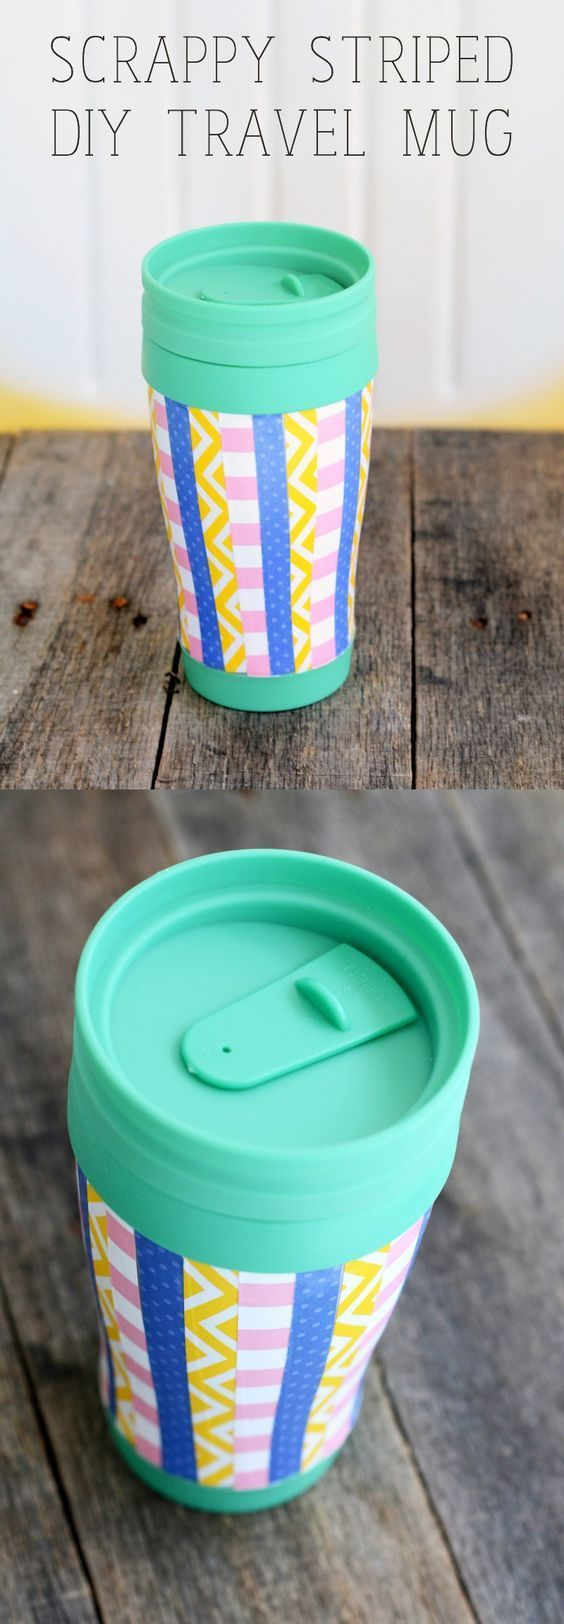 This DIY travel mug was assembled with a dollar store item, paper scraps, and Dishwasher Safe Mod Podge. It's so easy and inexpensive to make!